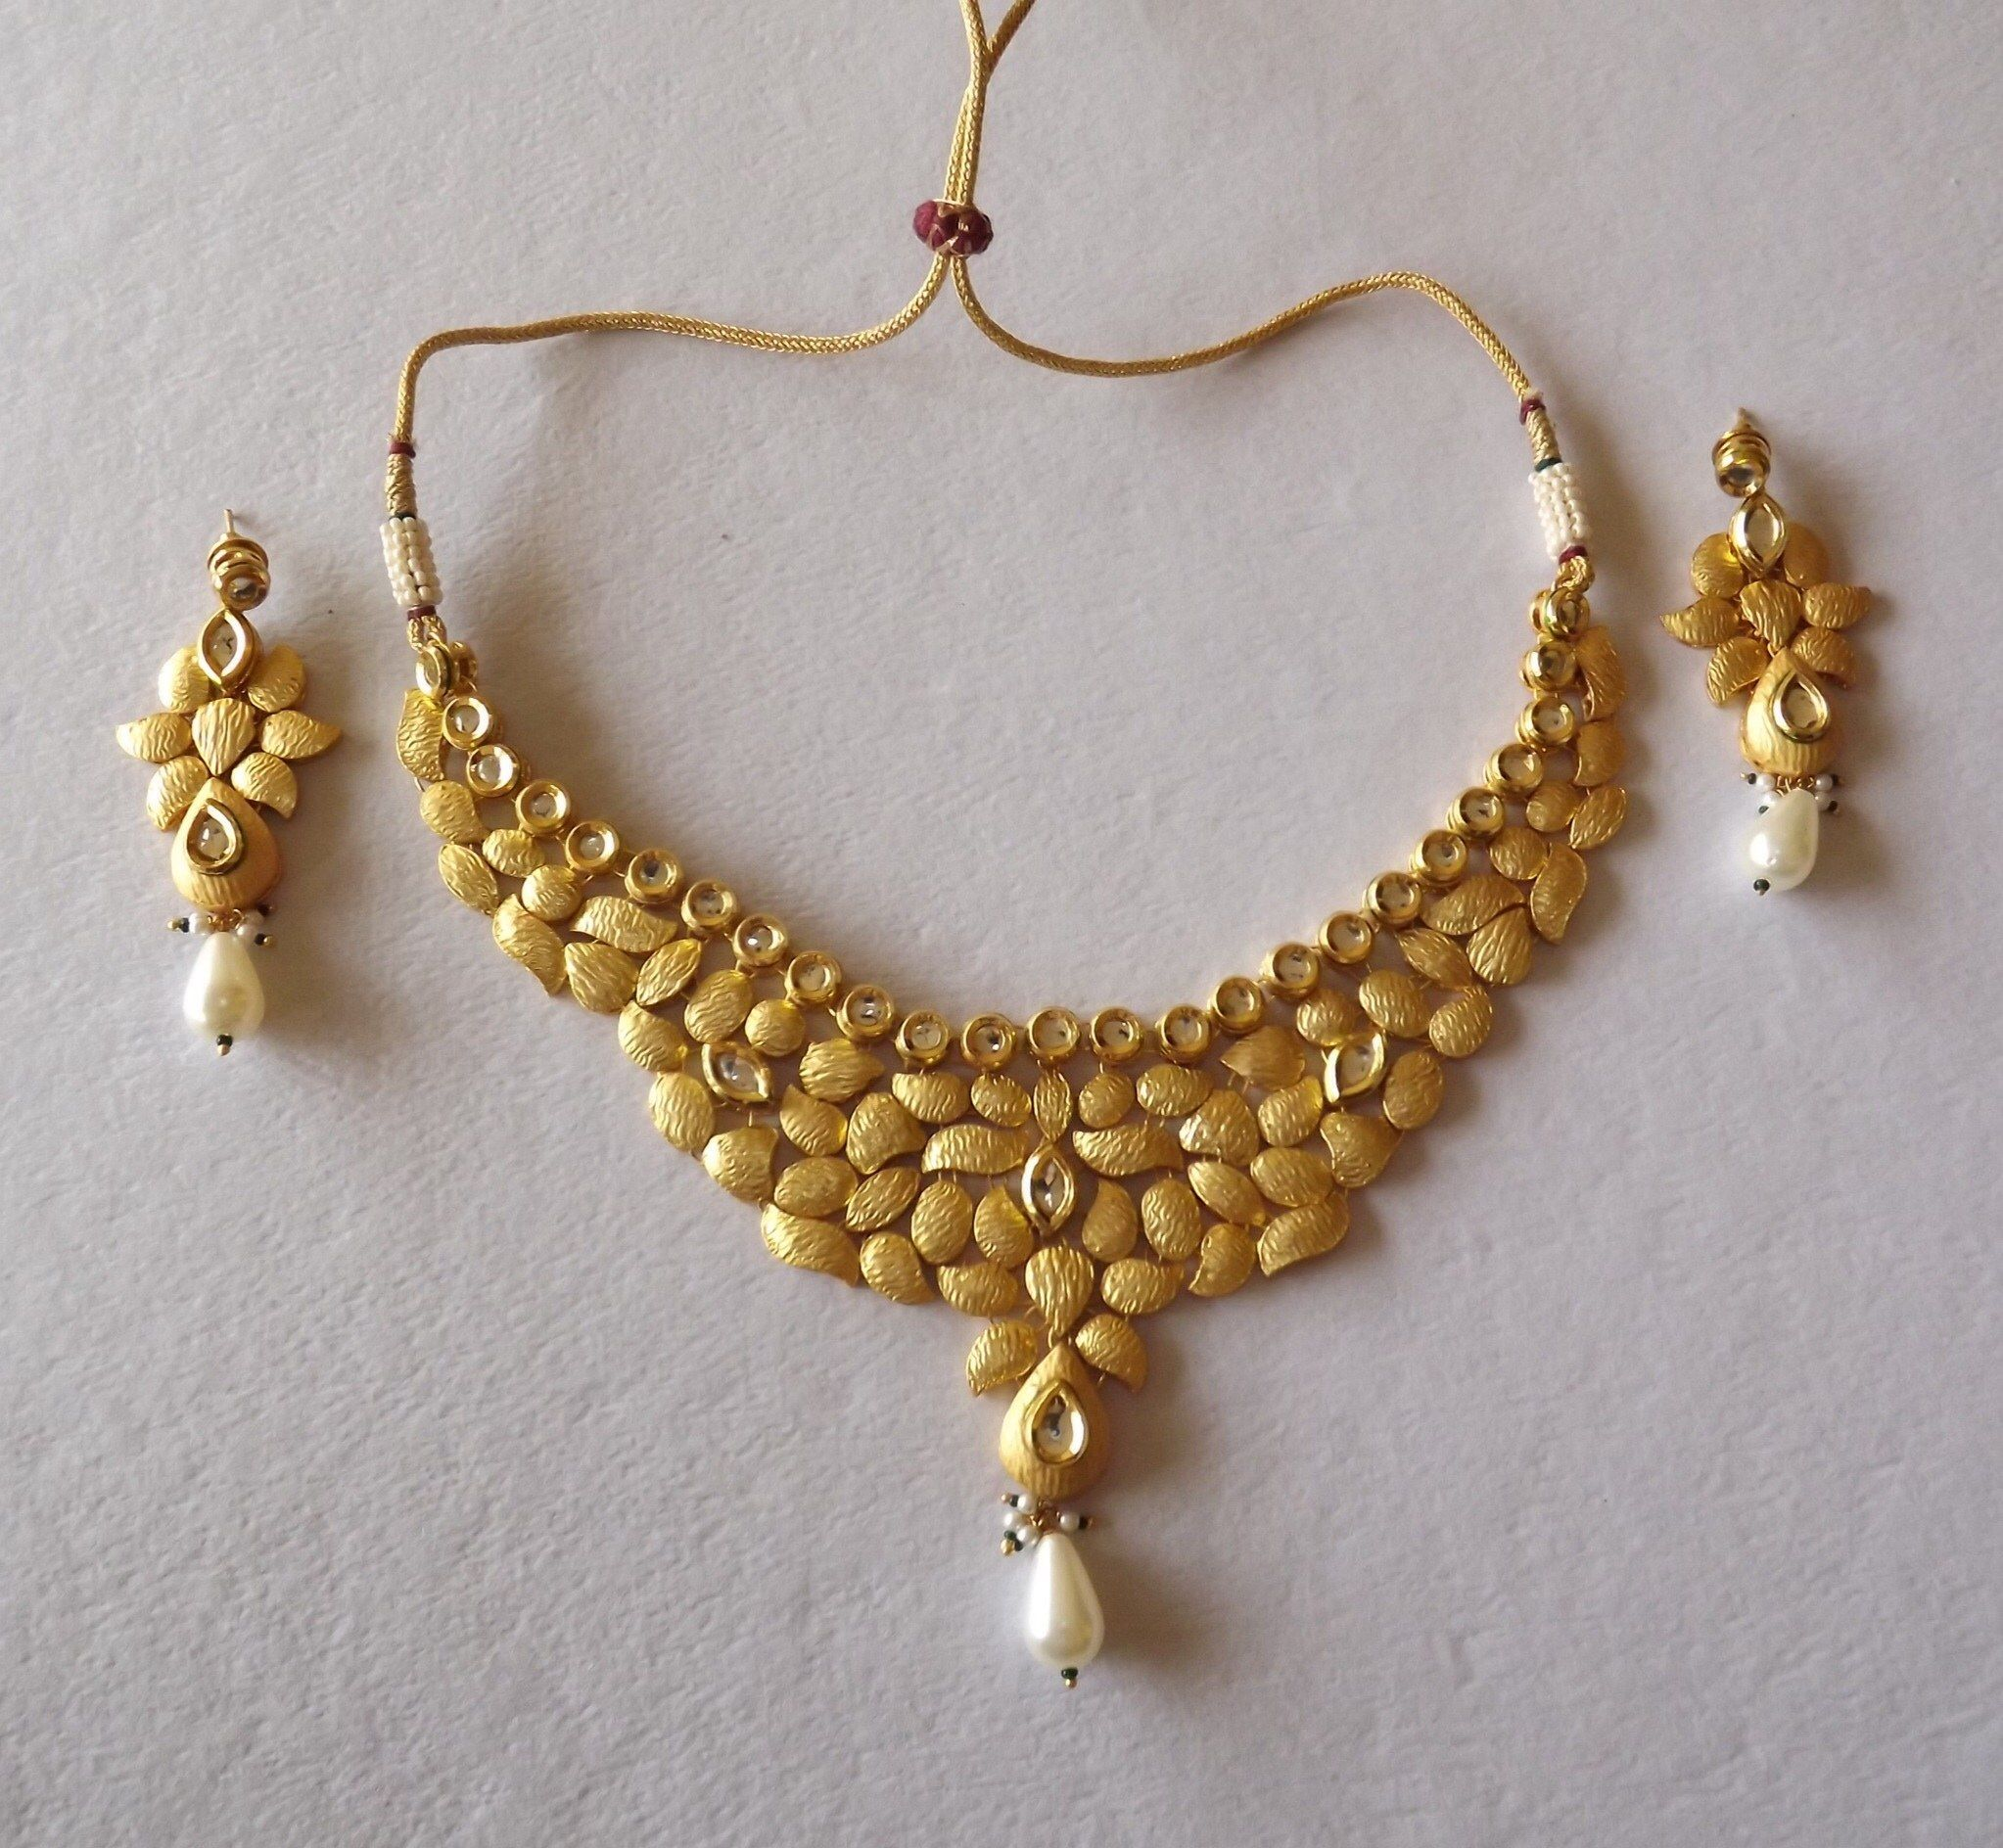 Indian Gold Jewellery Necklace Sets Google Search: Kalyan Jewellers - Google Search